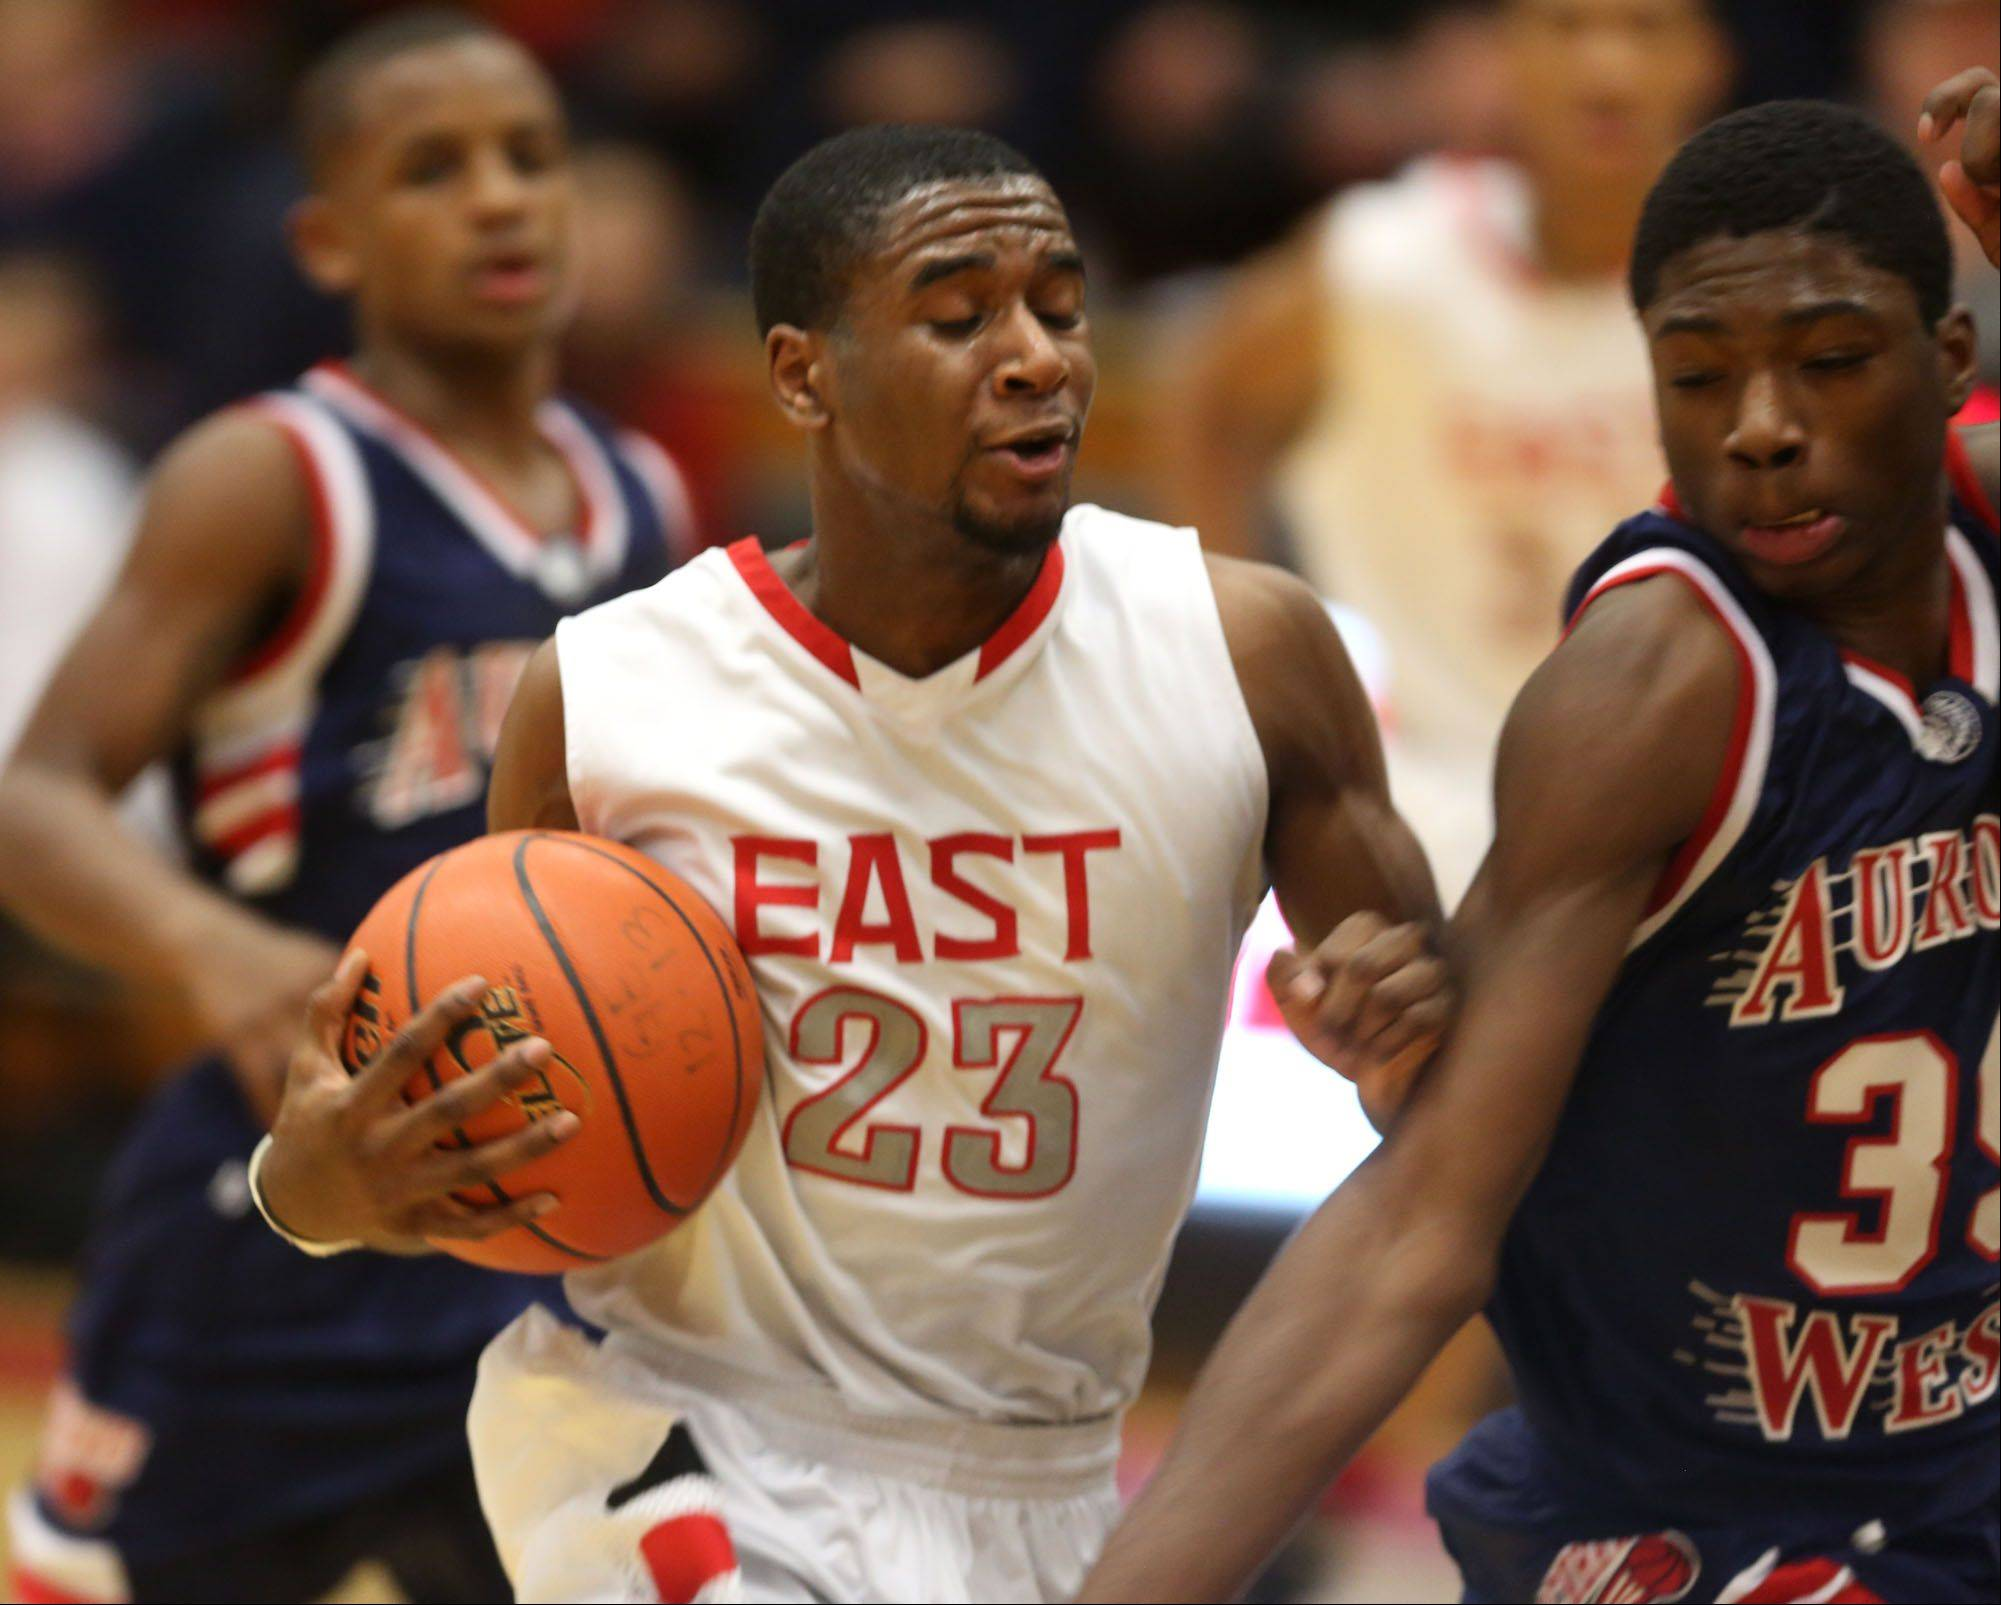 Images: West Aurora vs. Glenbard East boys basketball